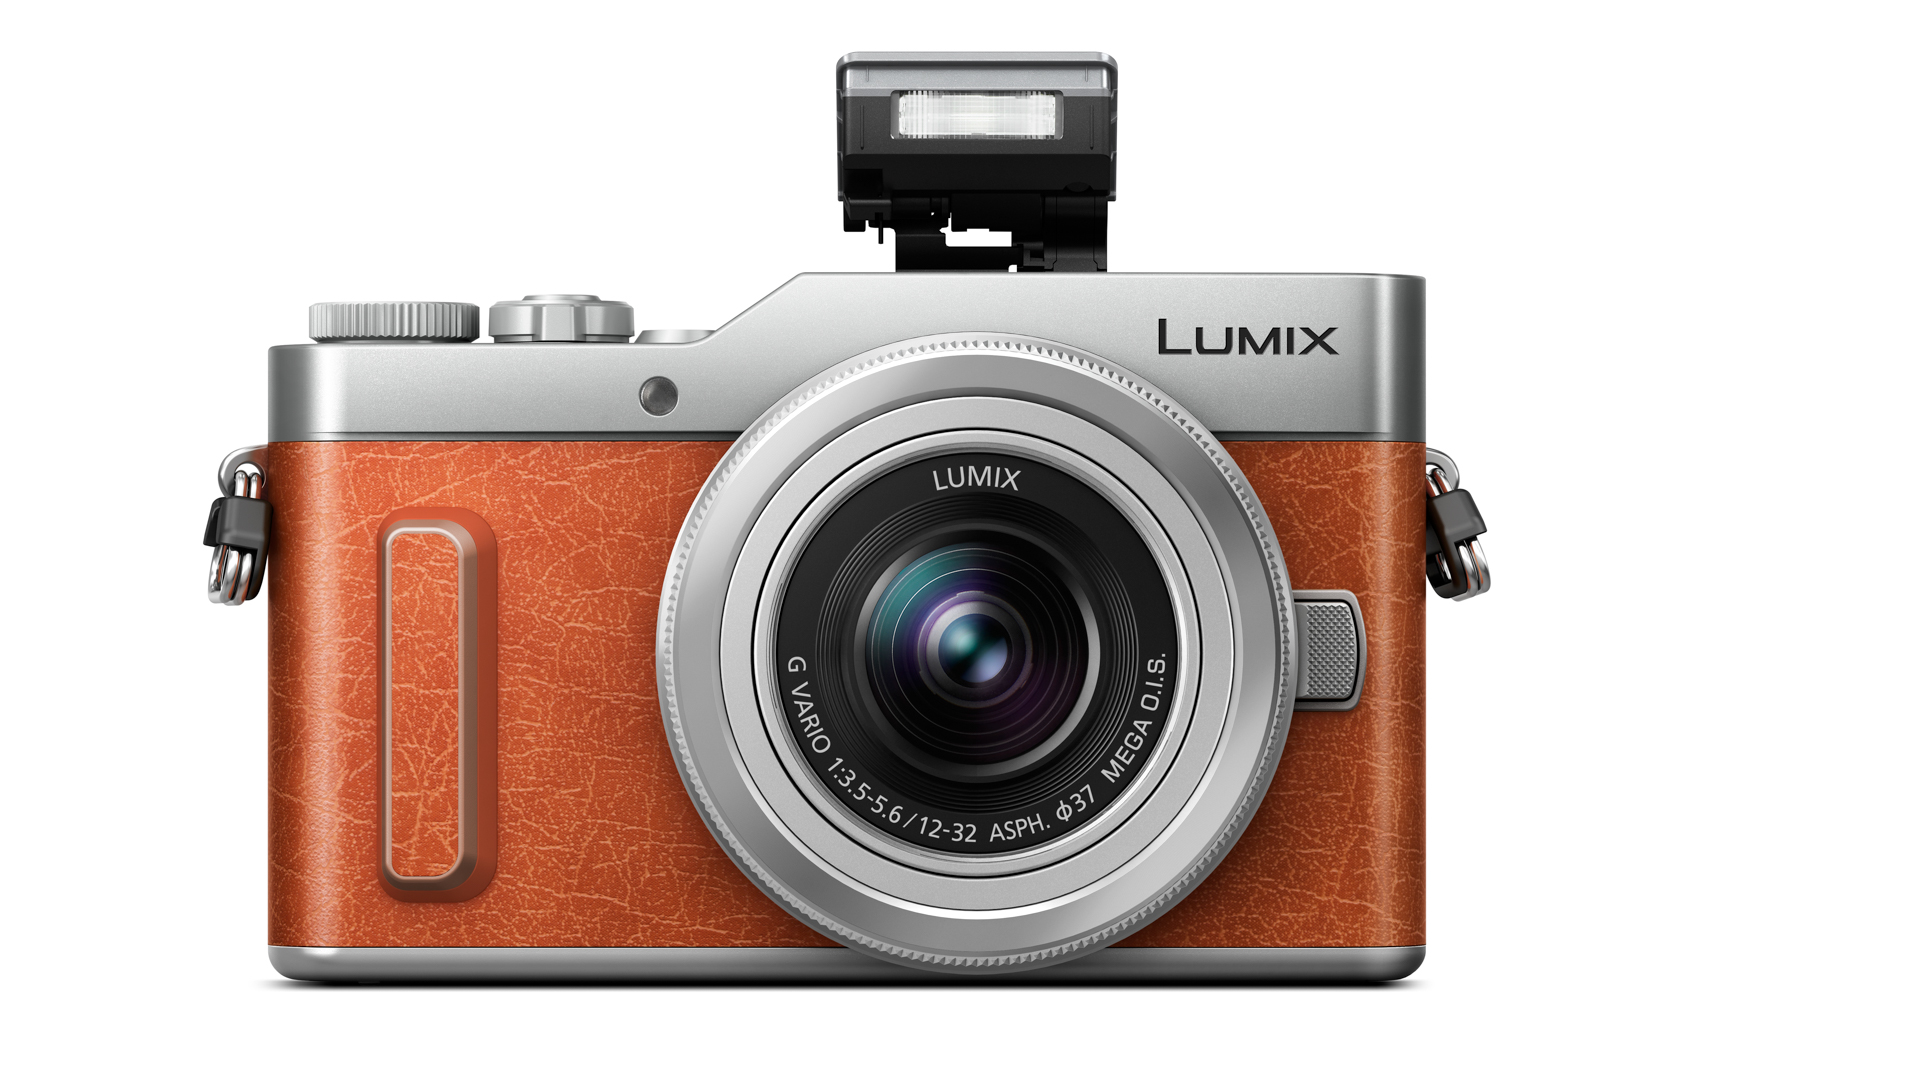 panasonic lumix gx880 hybride photo - Blog SFAM